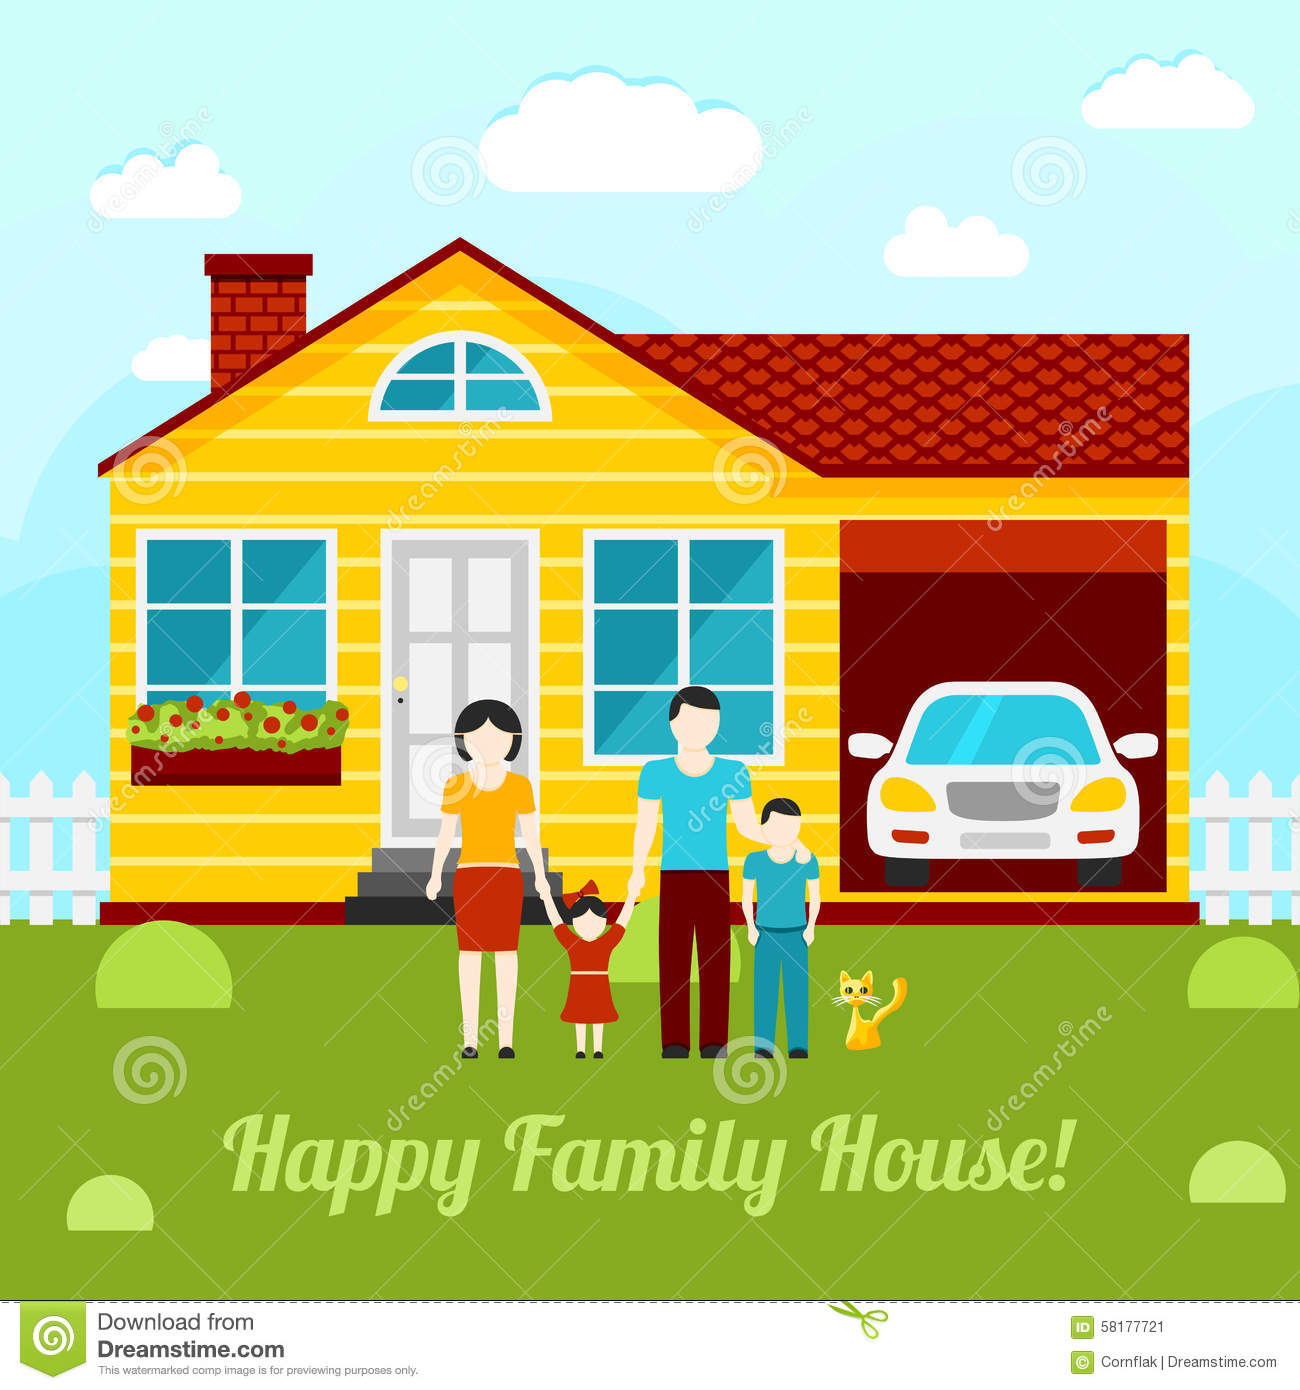 Happy family house concept illustration couple stock vector image 58177721 - Houses for families withchild ...